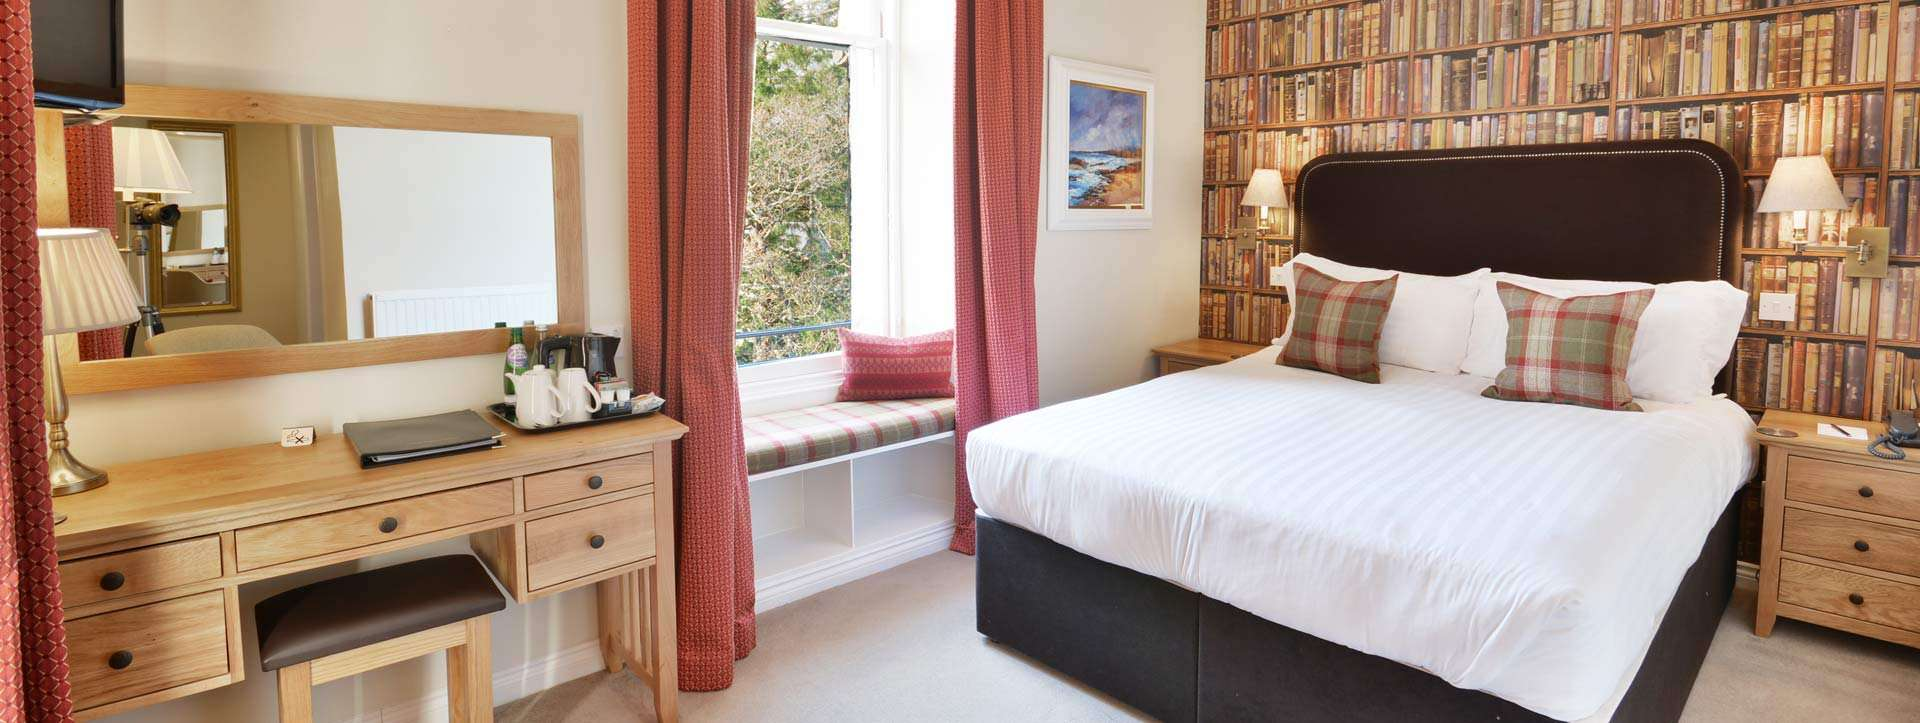 Pitlochry Hotel Classic Rooms